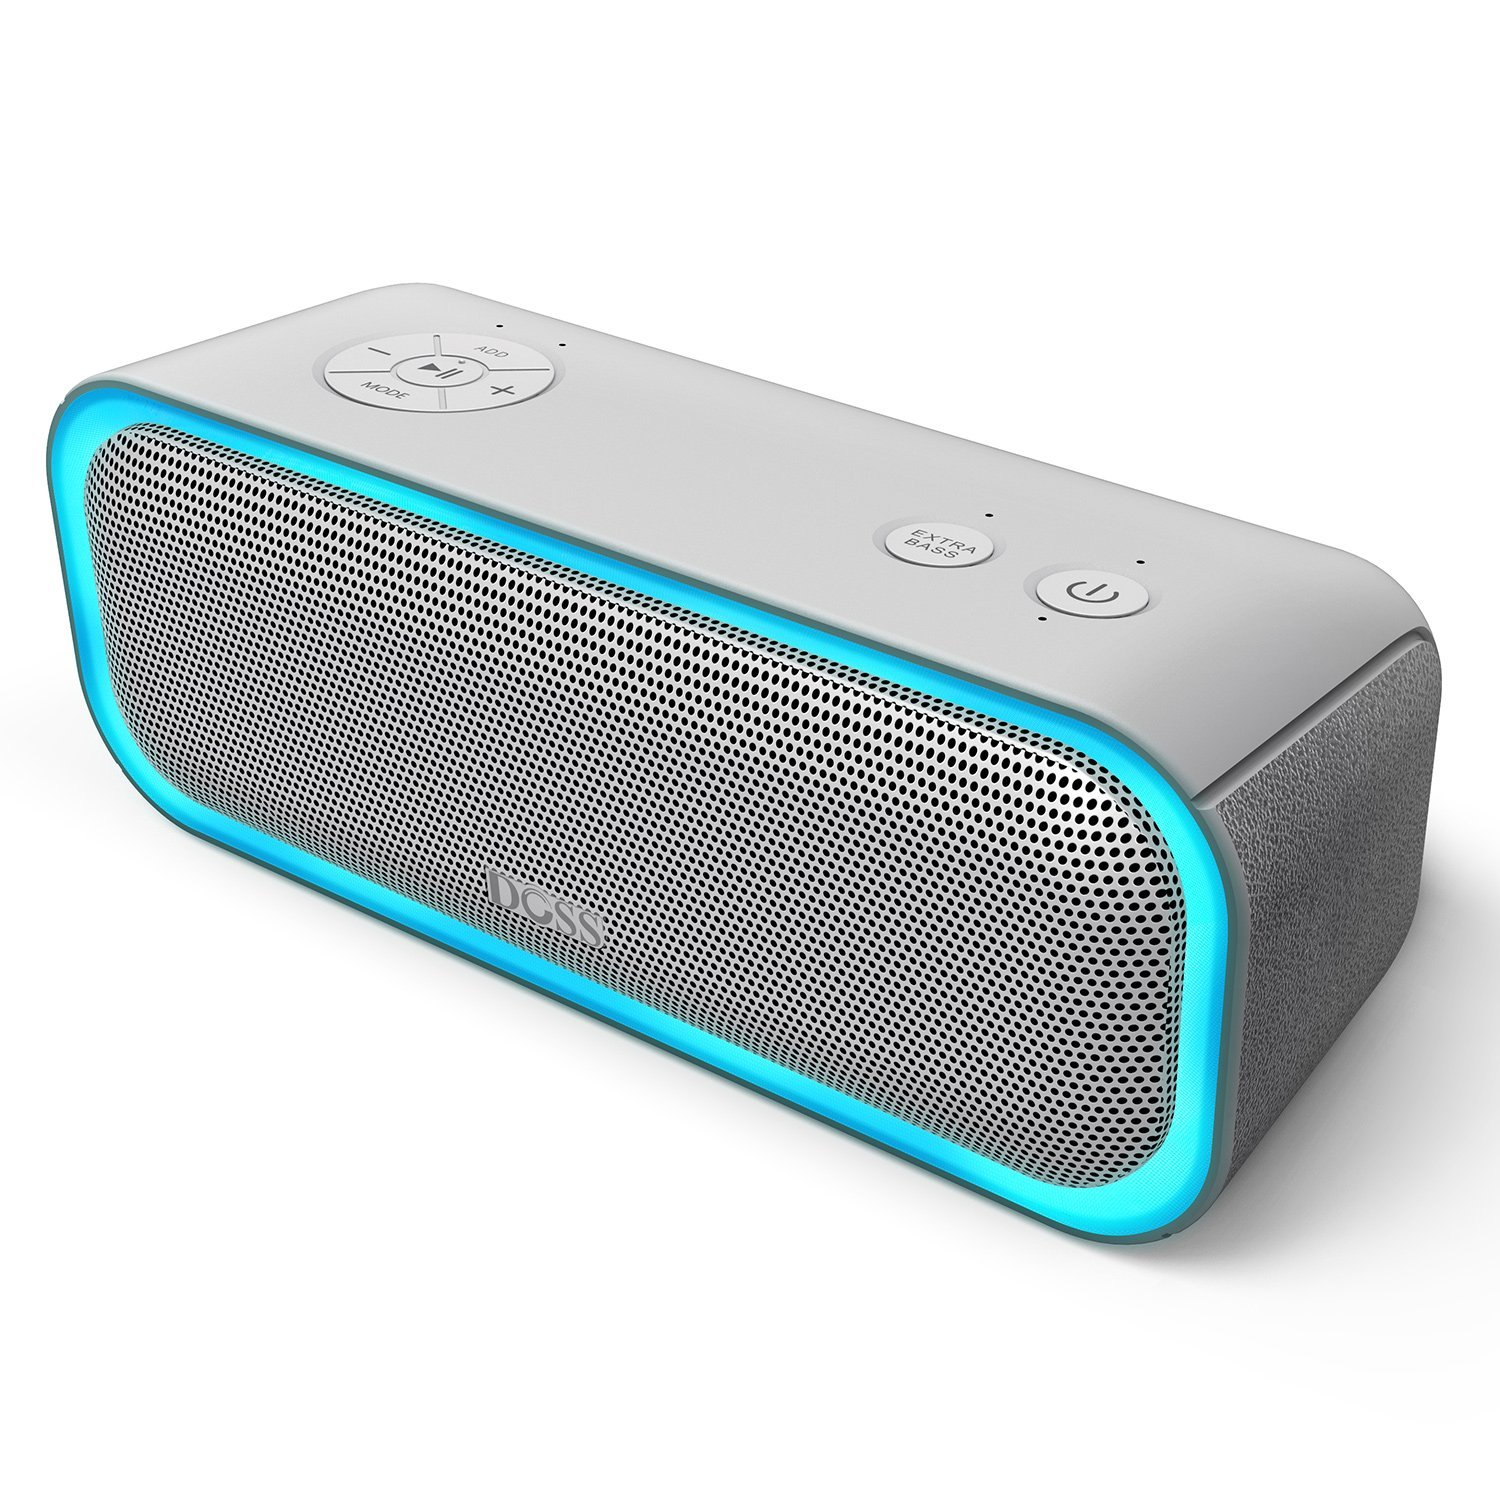 DOSS SoundBox Pro Wireless Bluetooth Speaker, 20W Speaker with Stereo Sound, Enhanced Bass, Stereo Pairing, Multiple LED Light, Long-Lasting Battery Life for iPhone, Samsung, iPad, Echo dot, Good Gif by DOSS